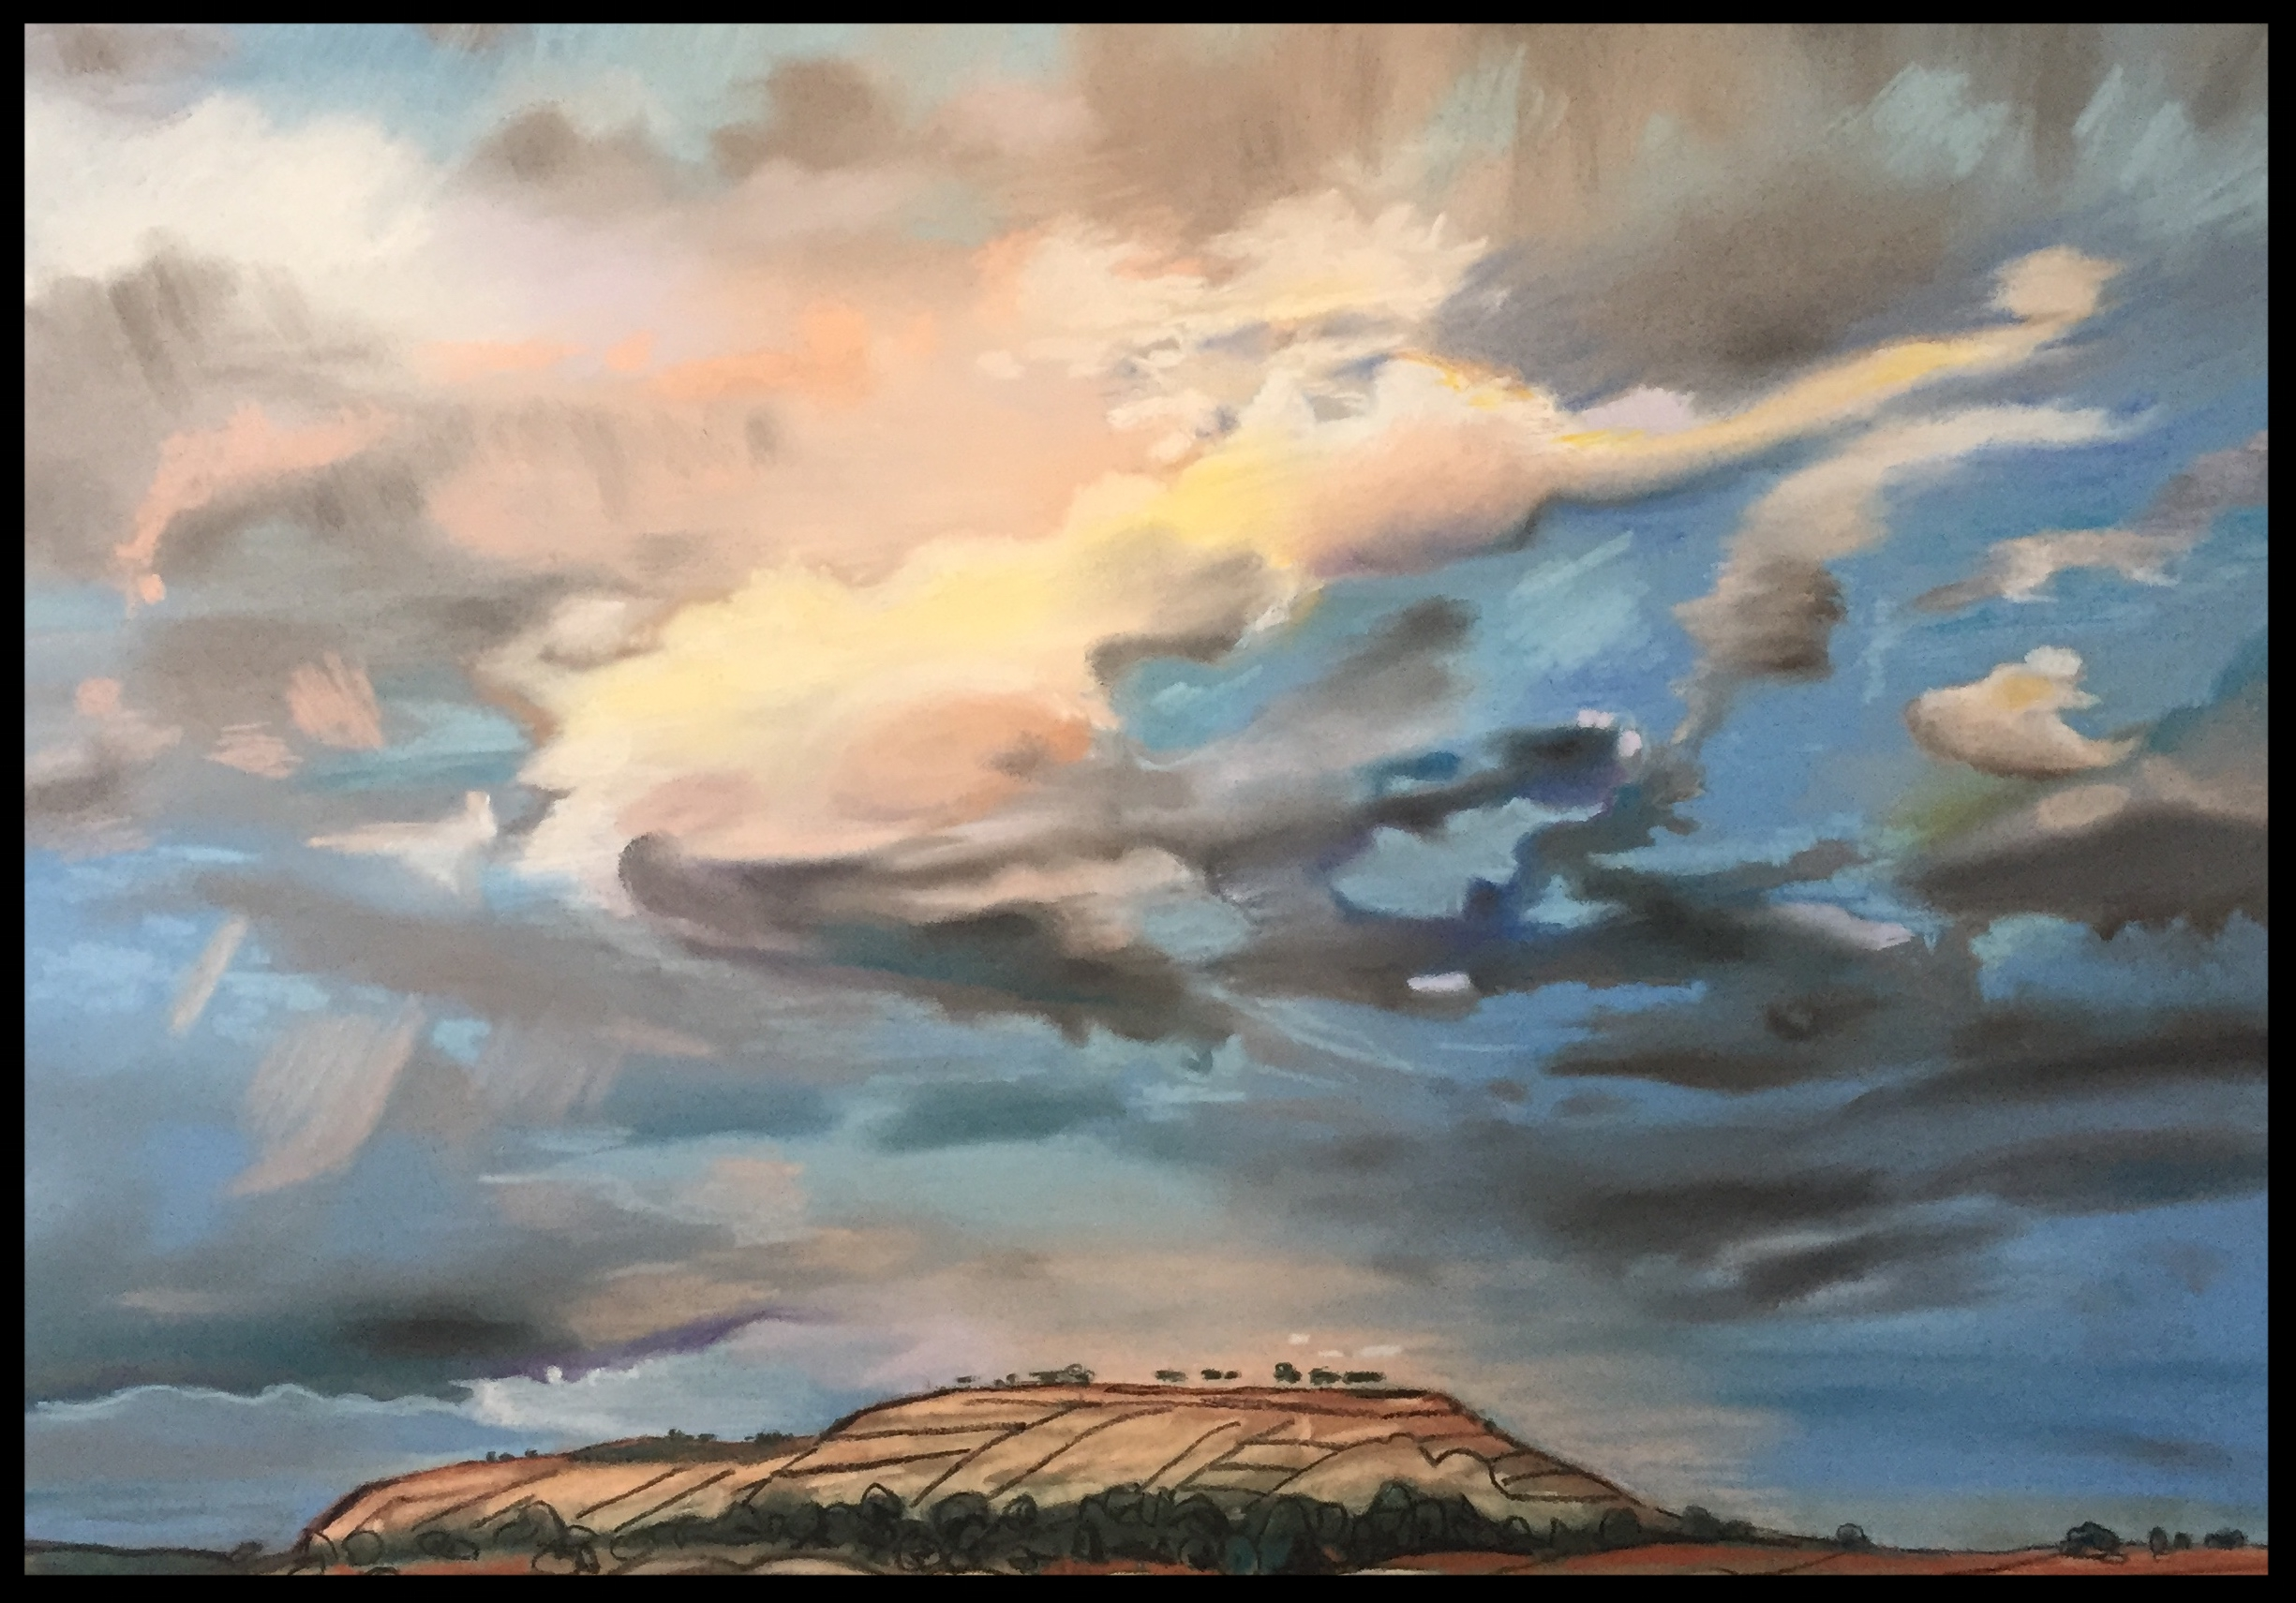 """Thus, We Walk  - 21.5"""" wide x 15.5"""" high - 2016   -Available for Purchase-"""